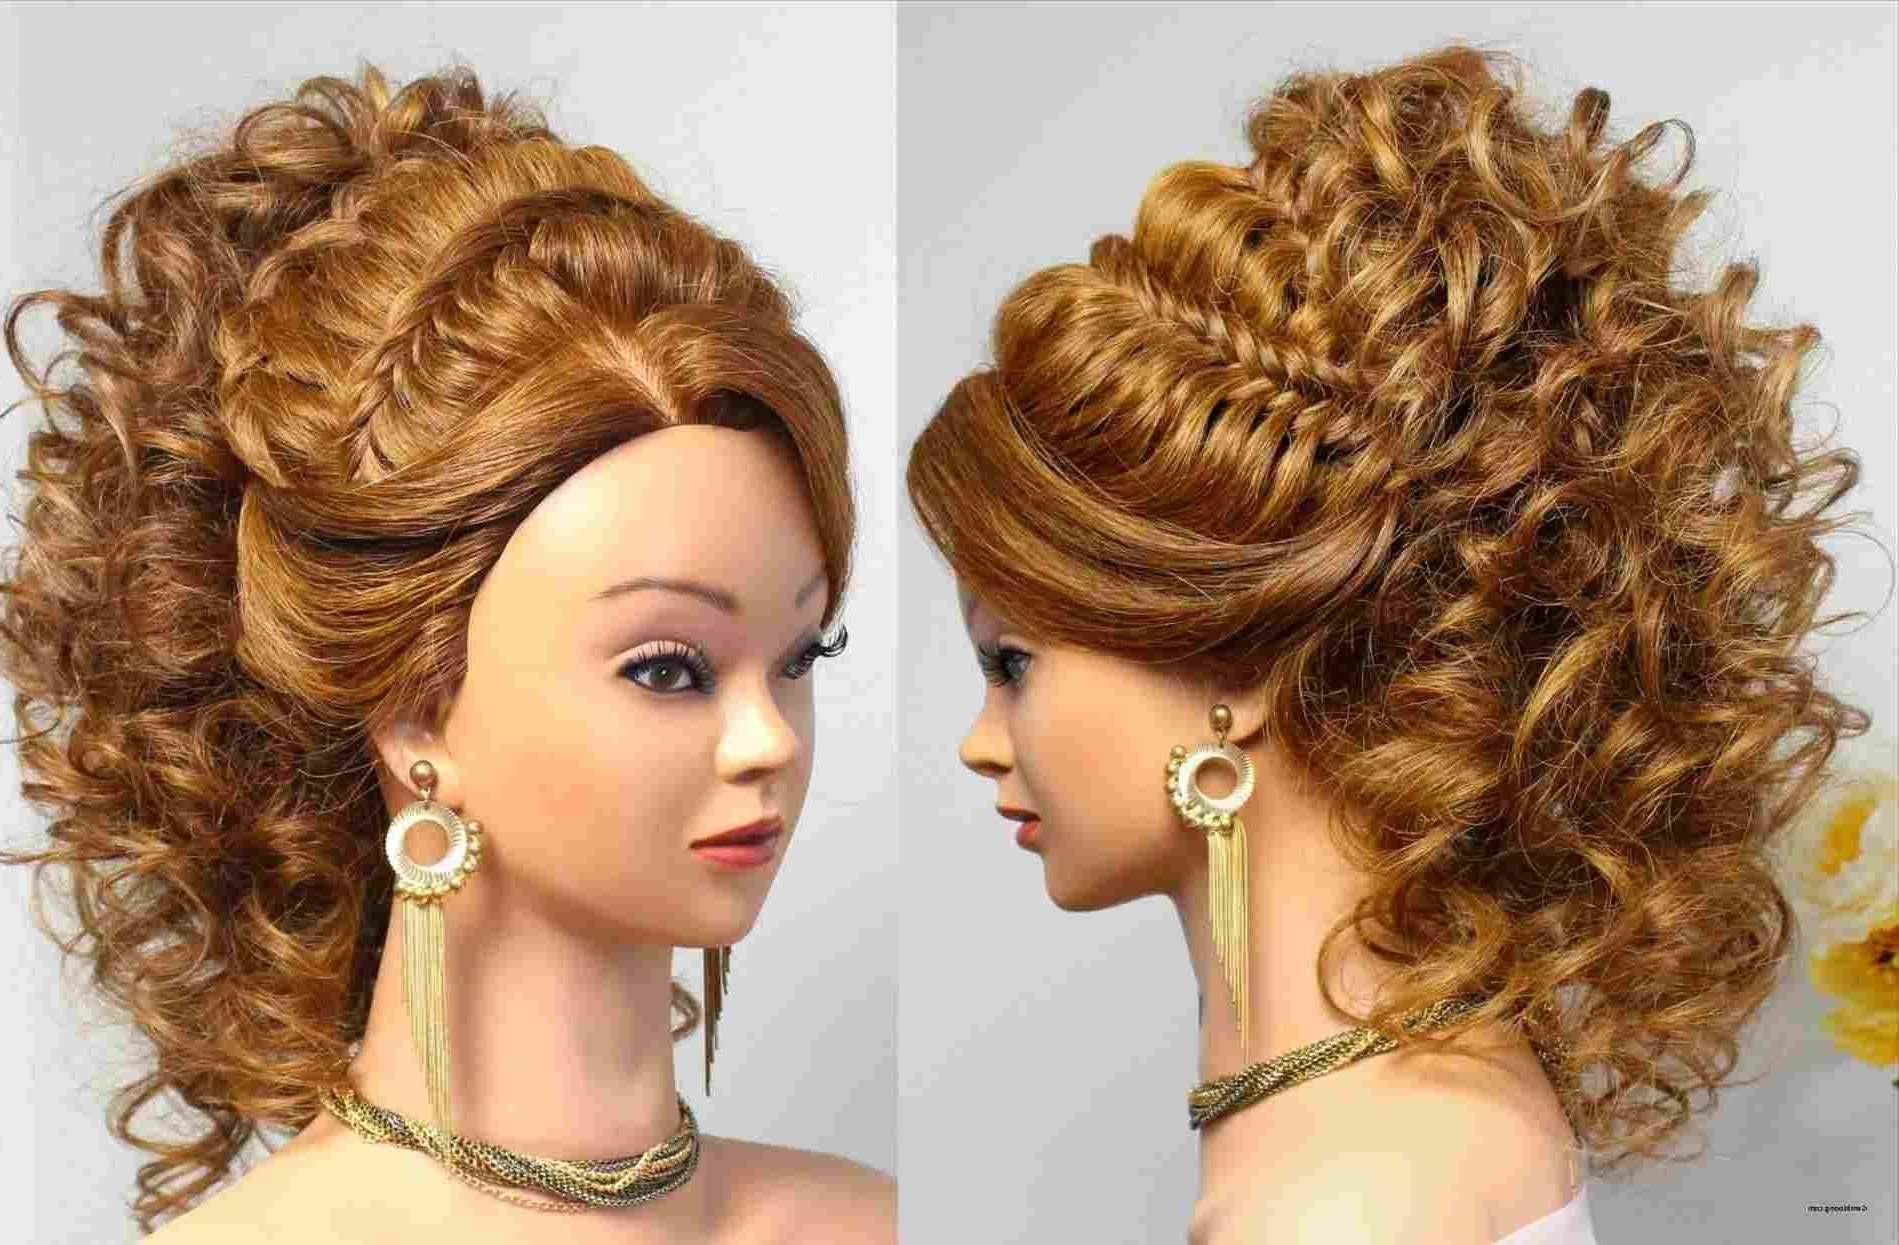 Widely Used Messy Ponytail Hairstyles With A Dutch Braid Pertaining To Step Cute Dutch Flower Braid Rhromvinfo Styles Pinterest Messy (View 19 of 20)